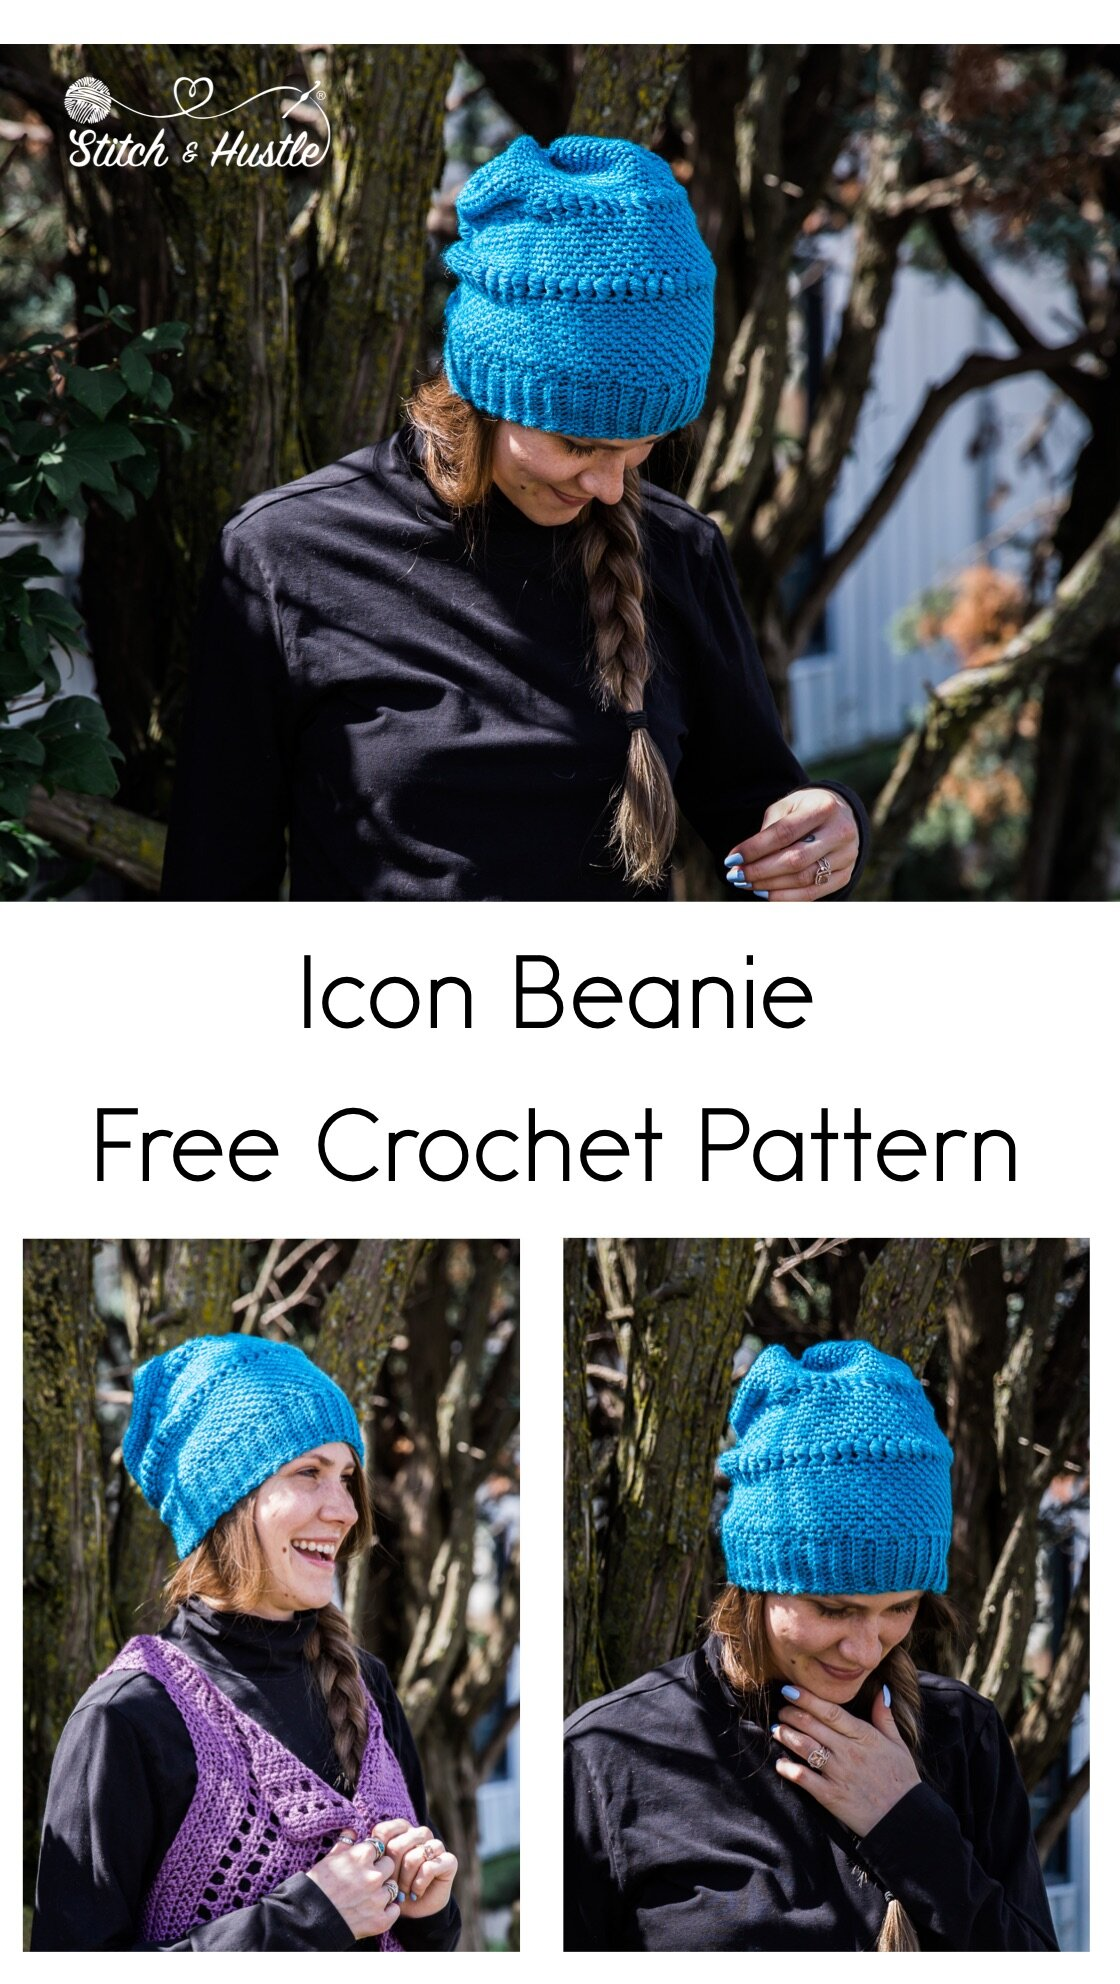 icon-Beanie-free-Crochet-pattern.jpeg